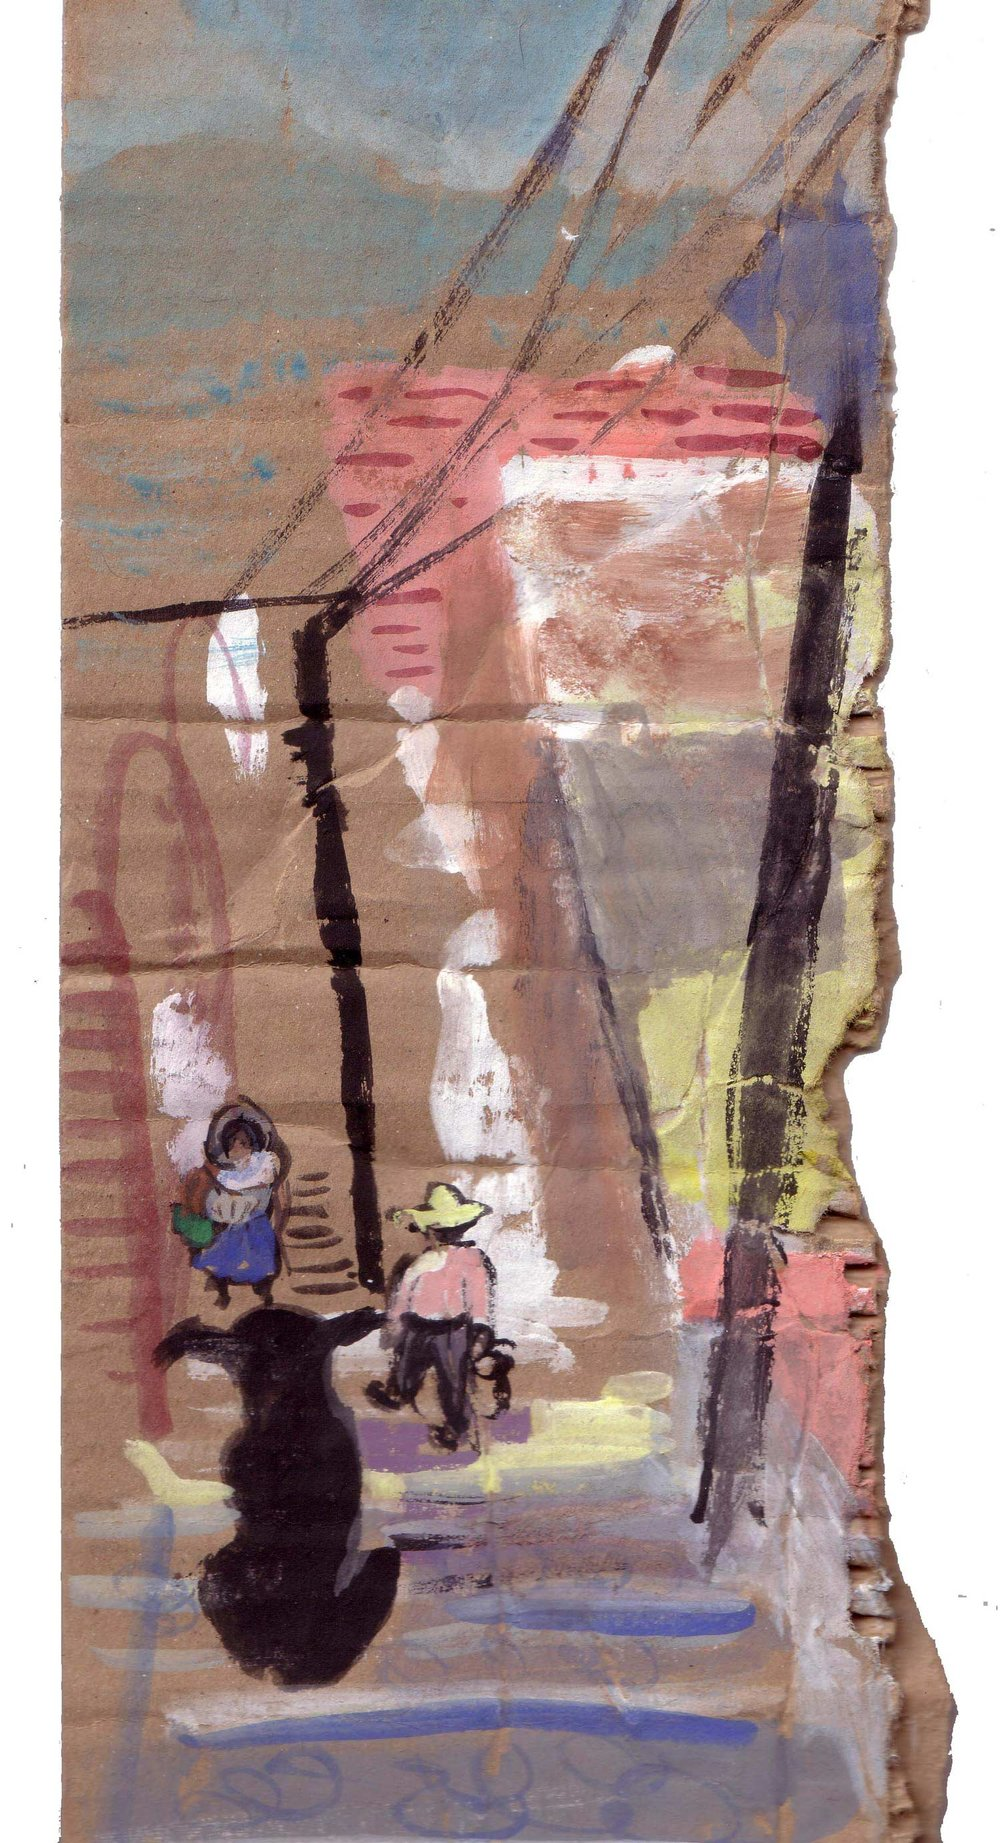 DOG'S EYE VIEW  Gouache on cardboard | 25 x 50.5 cm | 2004  Sold